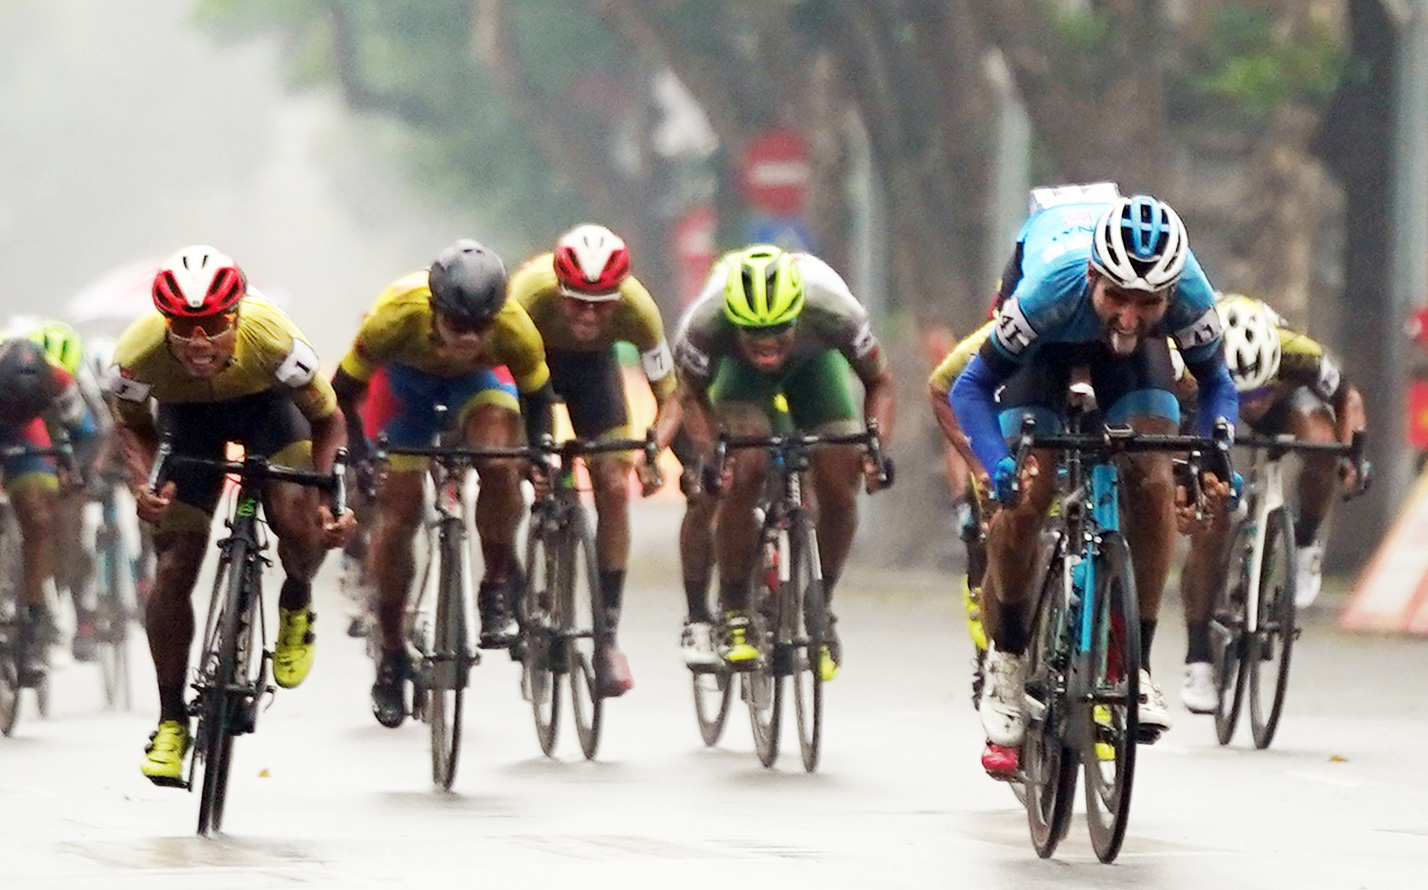 Cyclists race in the fifth stage of the HTV Cup national cycling tournament in Hanoi, April 10, 2021. Photo: T.P. / Tuoi Tre